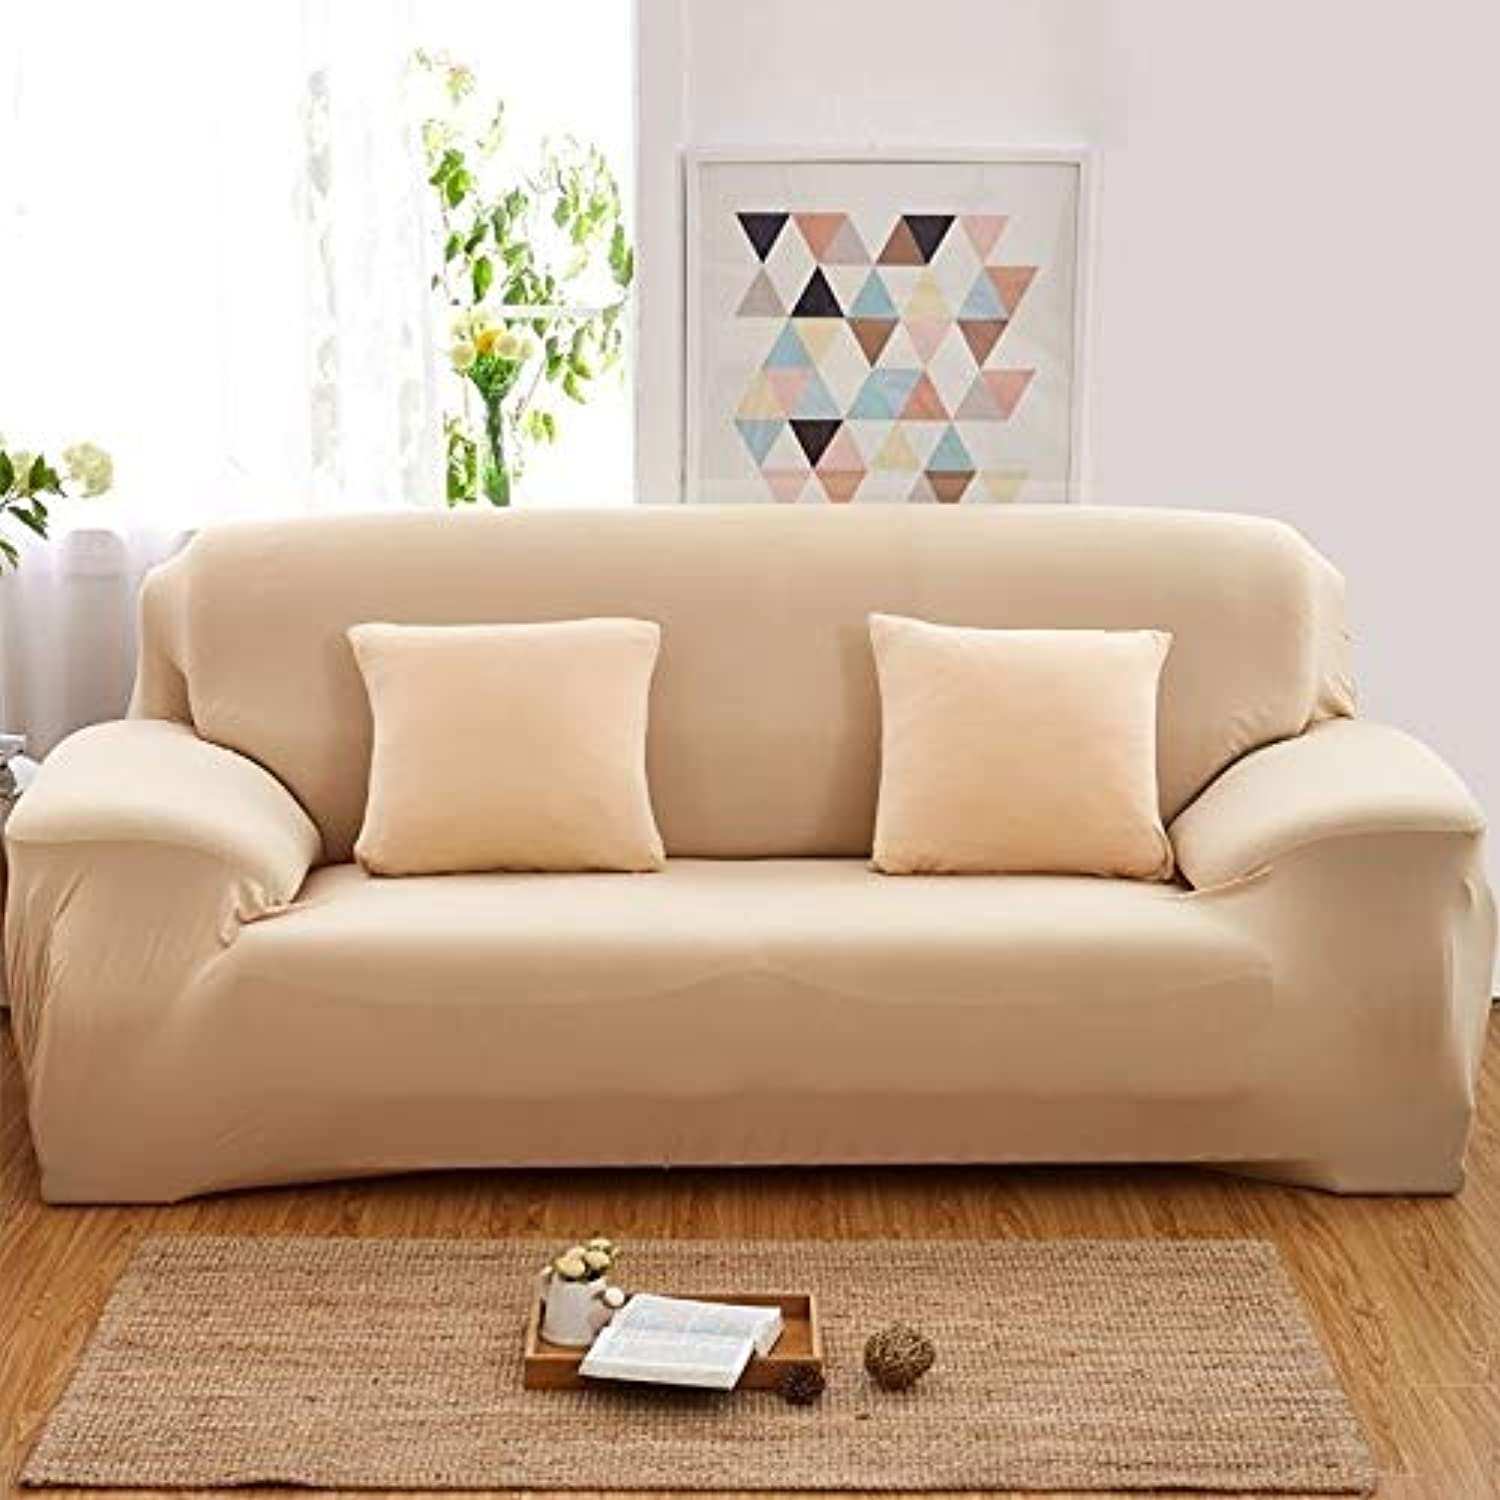 2 pcs of 1 2 3 4 Seater Solid Sofa Cover Spandex Modern Elastic Polyester Couch Slipcover Chair Furniture Predector Living Room 24 colors